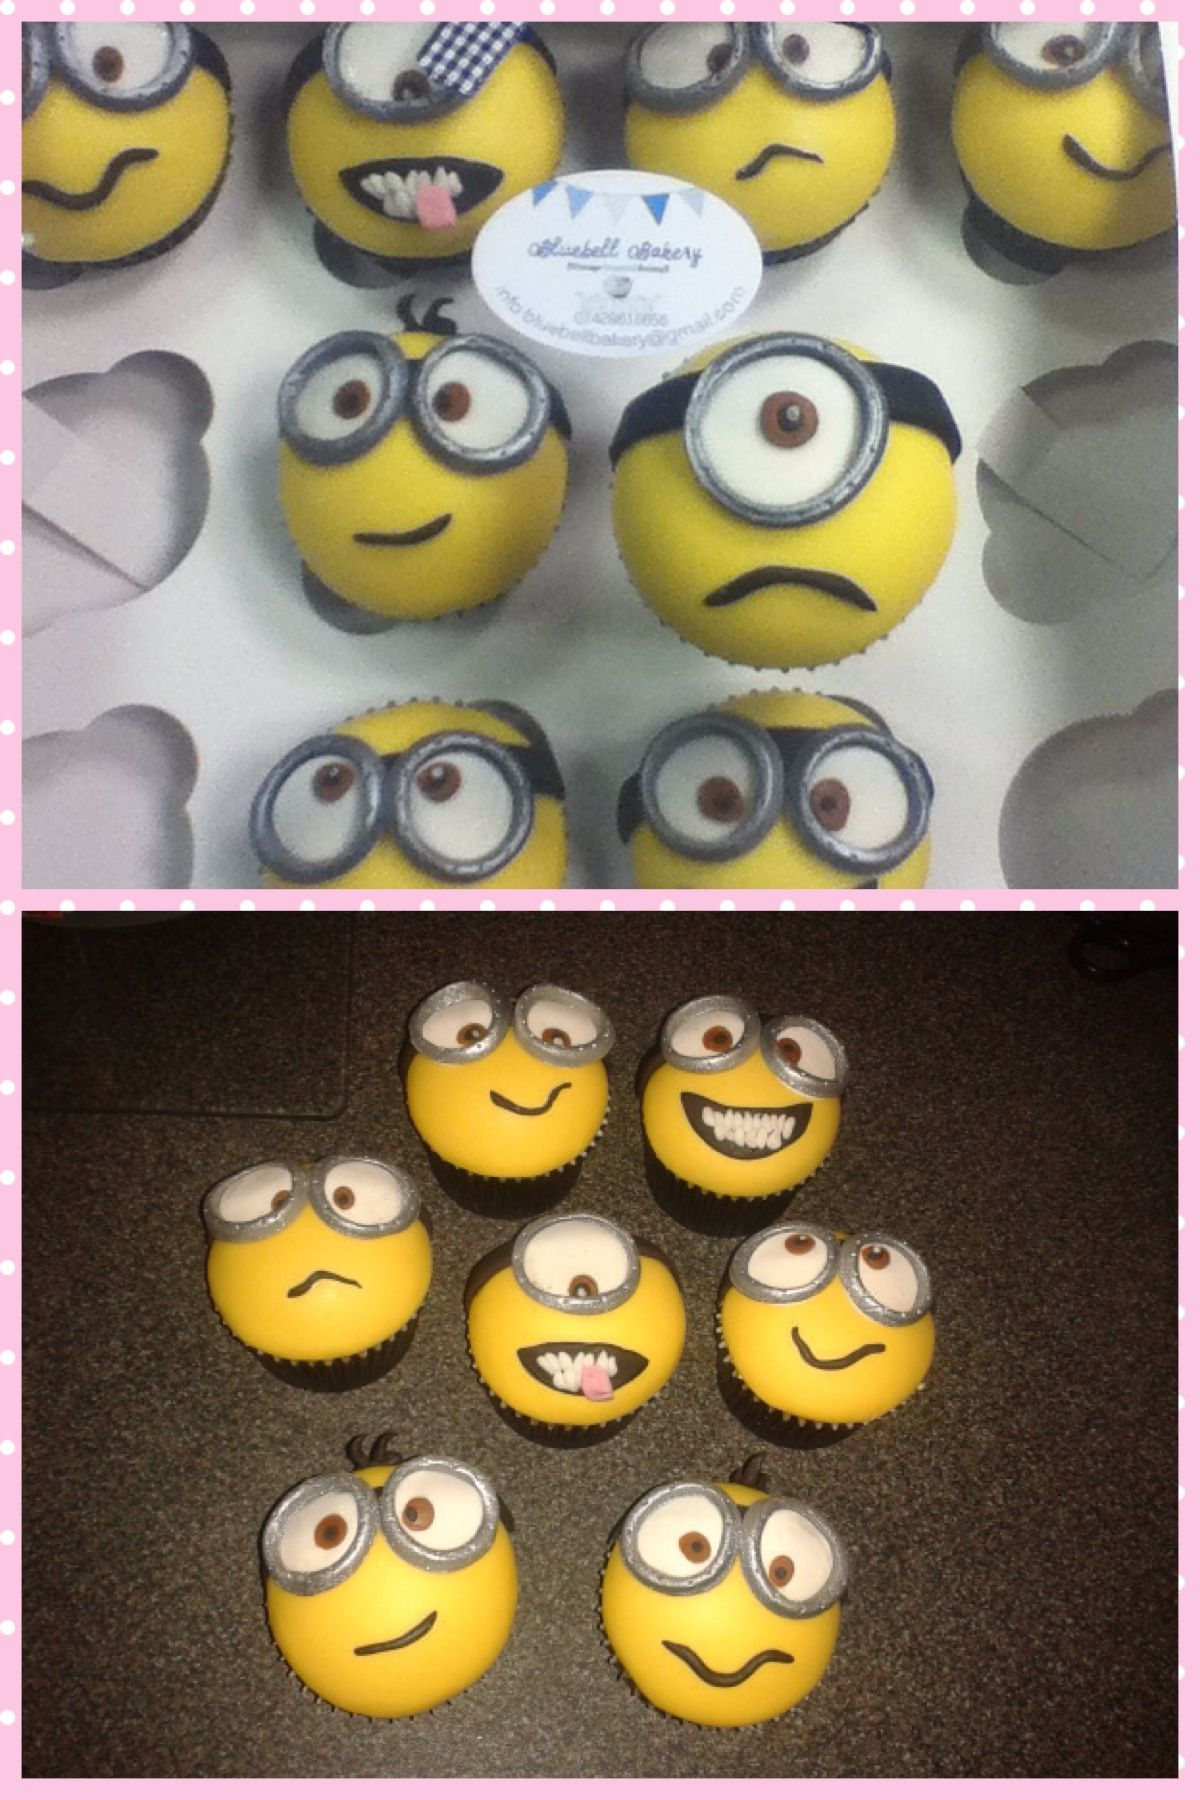 Minion cupcakes! From the Bluebell Bakery!